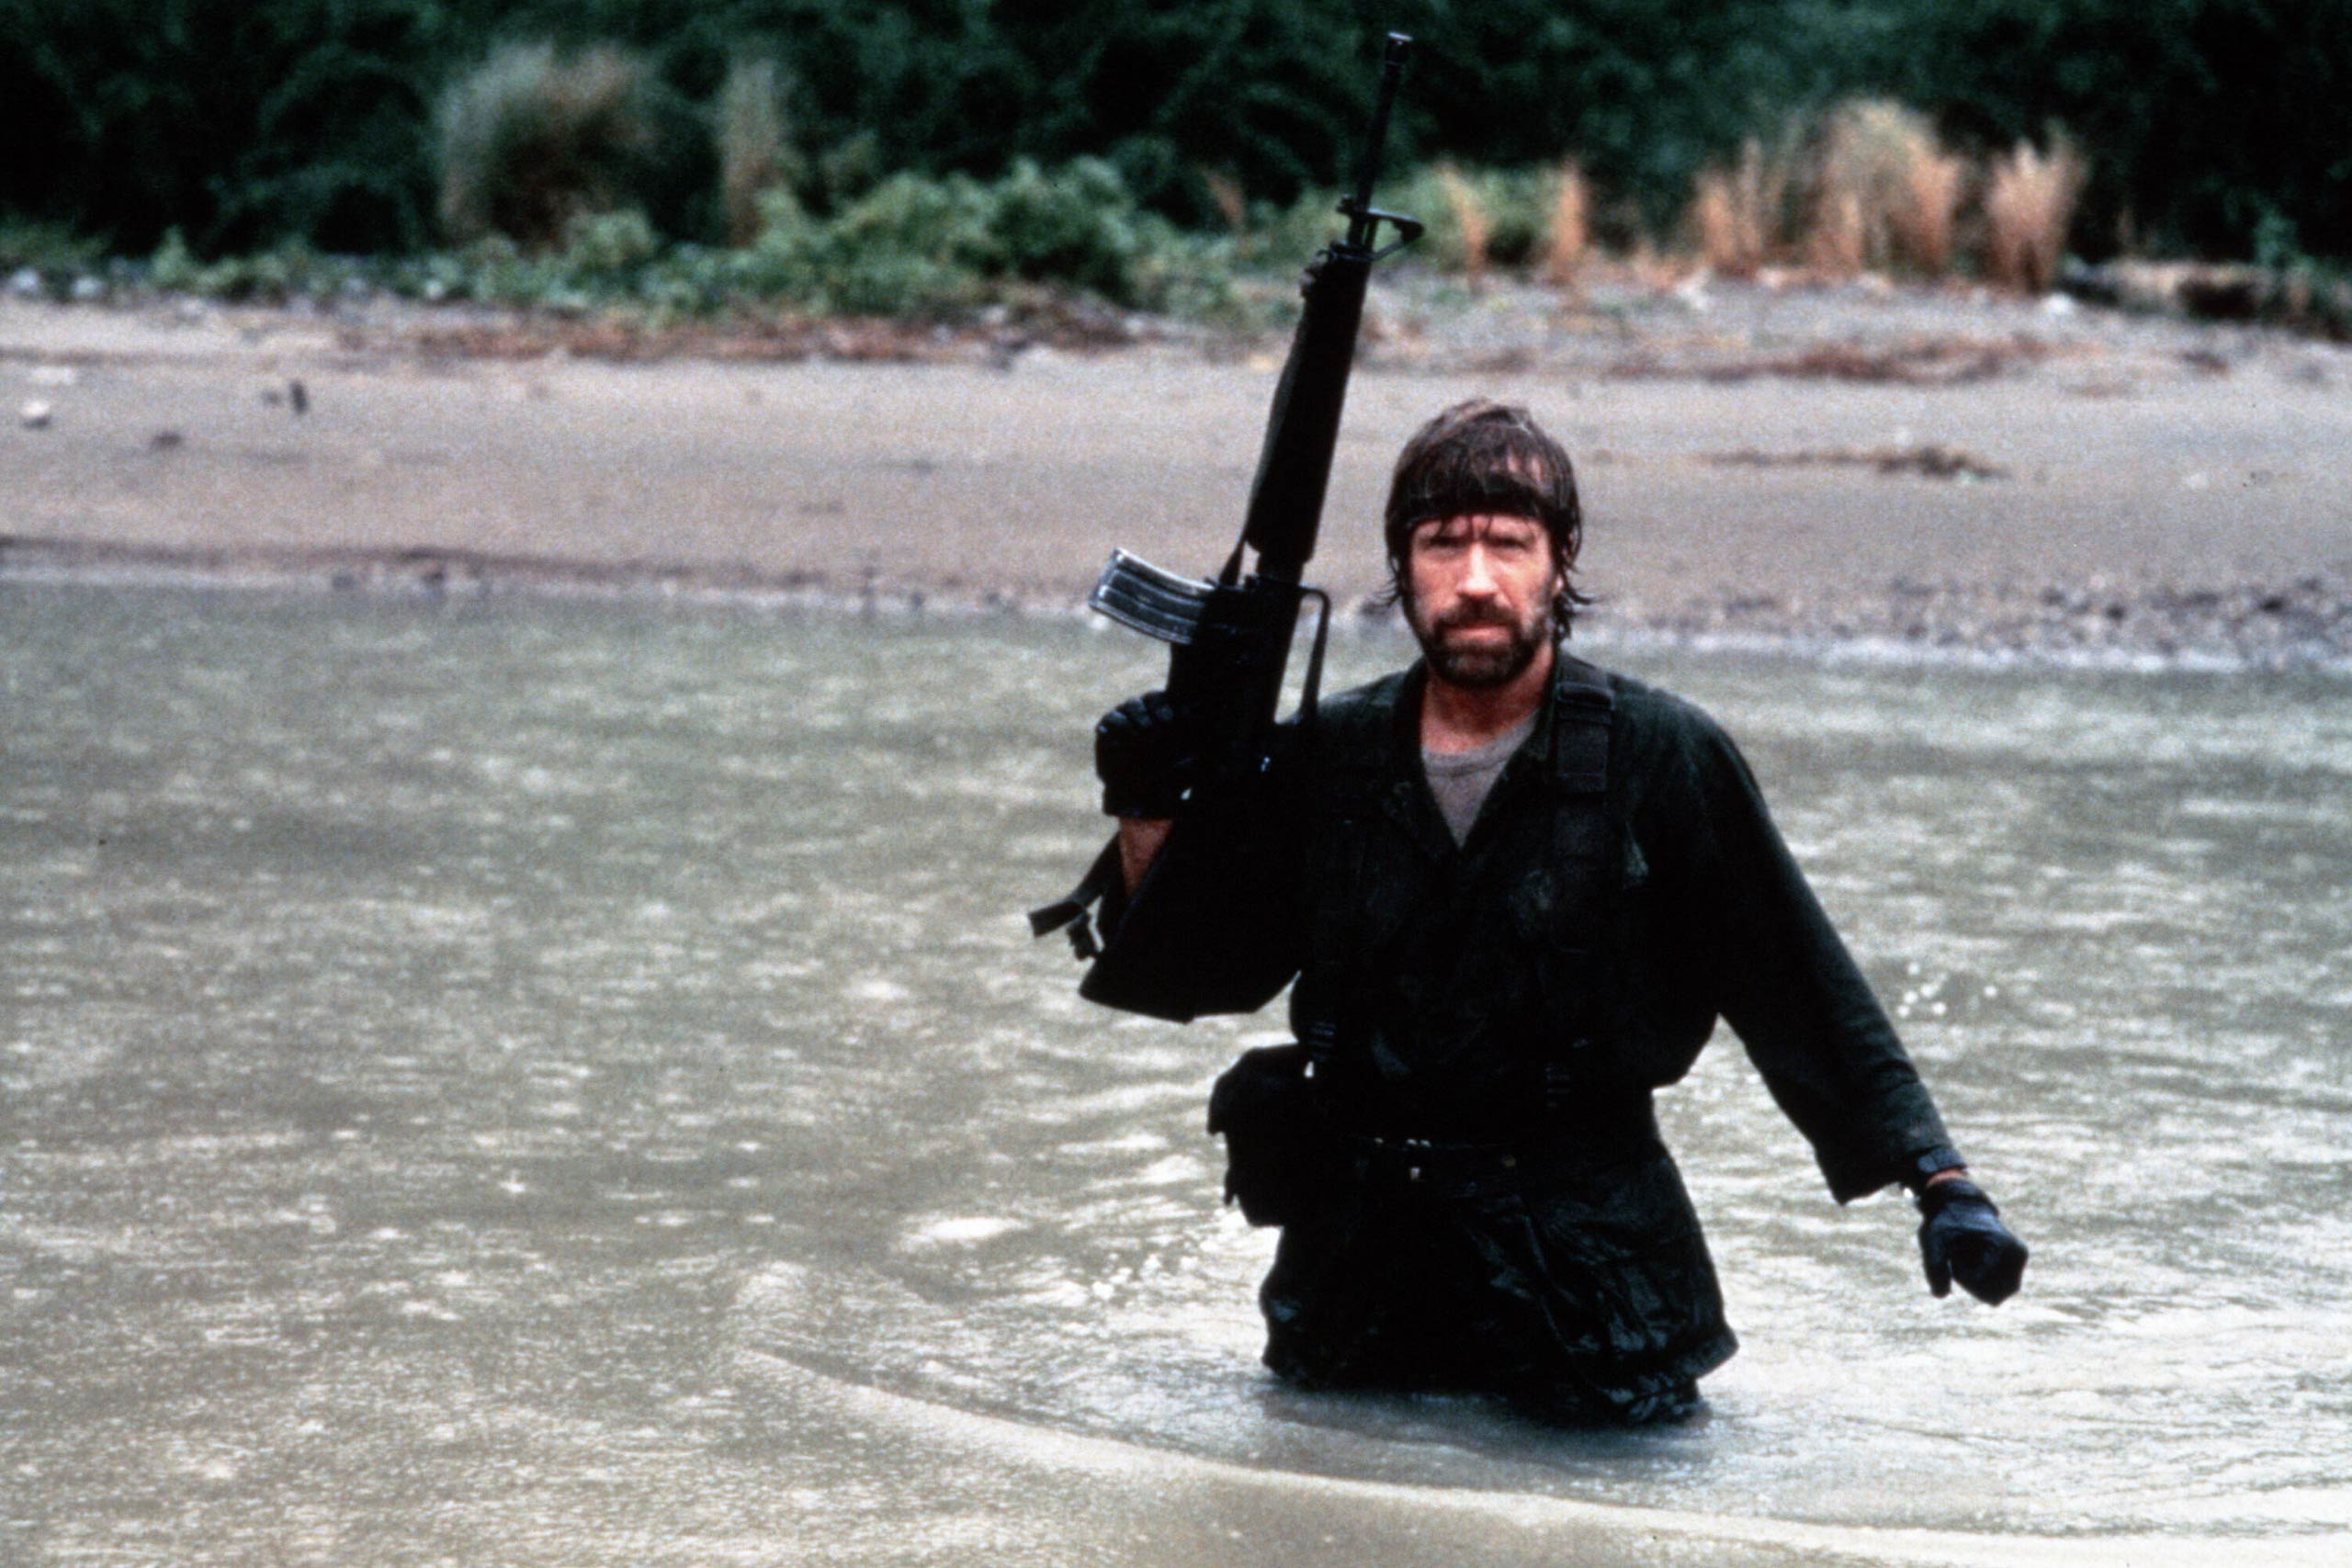 Chuck Norris as Col. James Braddock in Missing in Action, 1984.